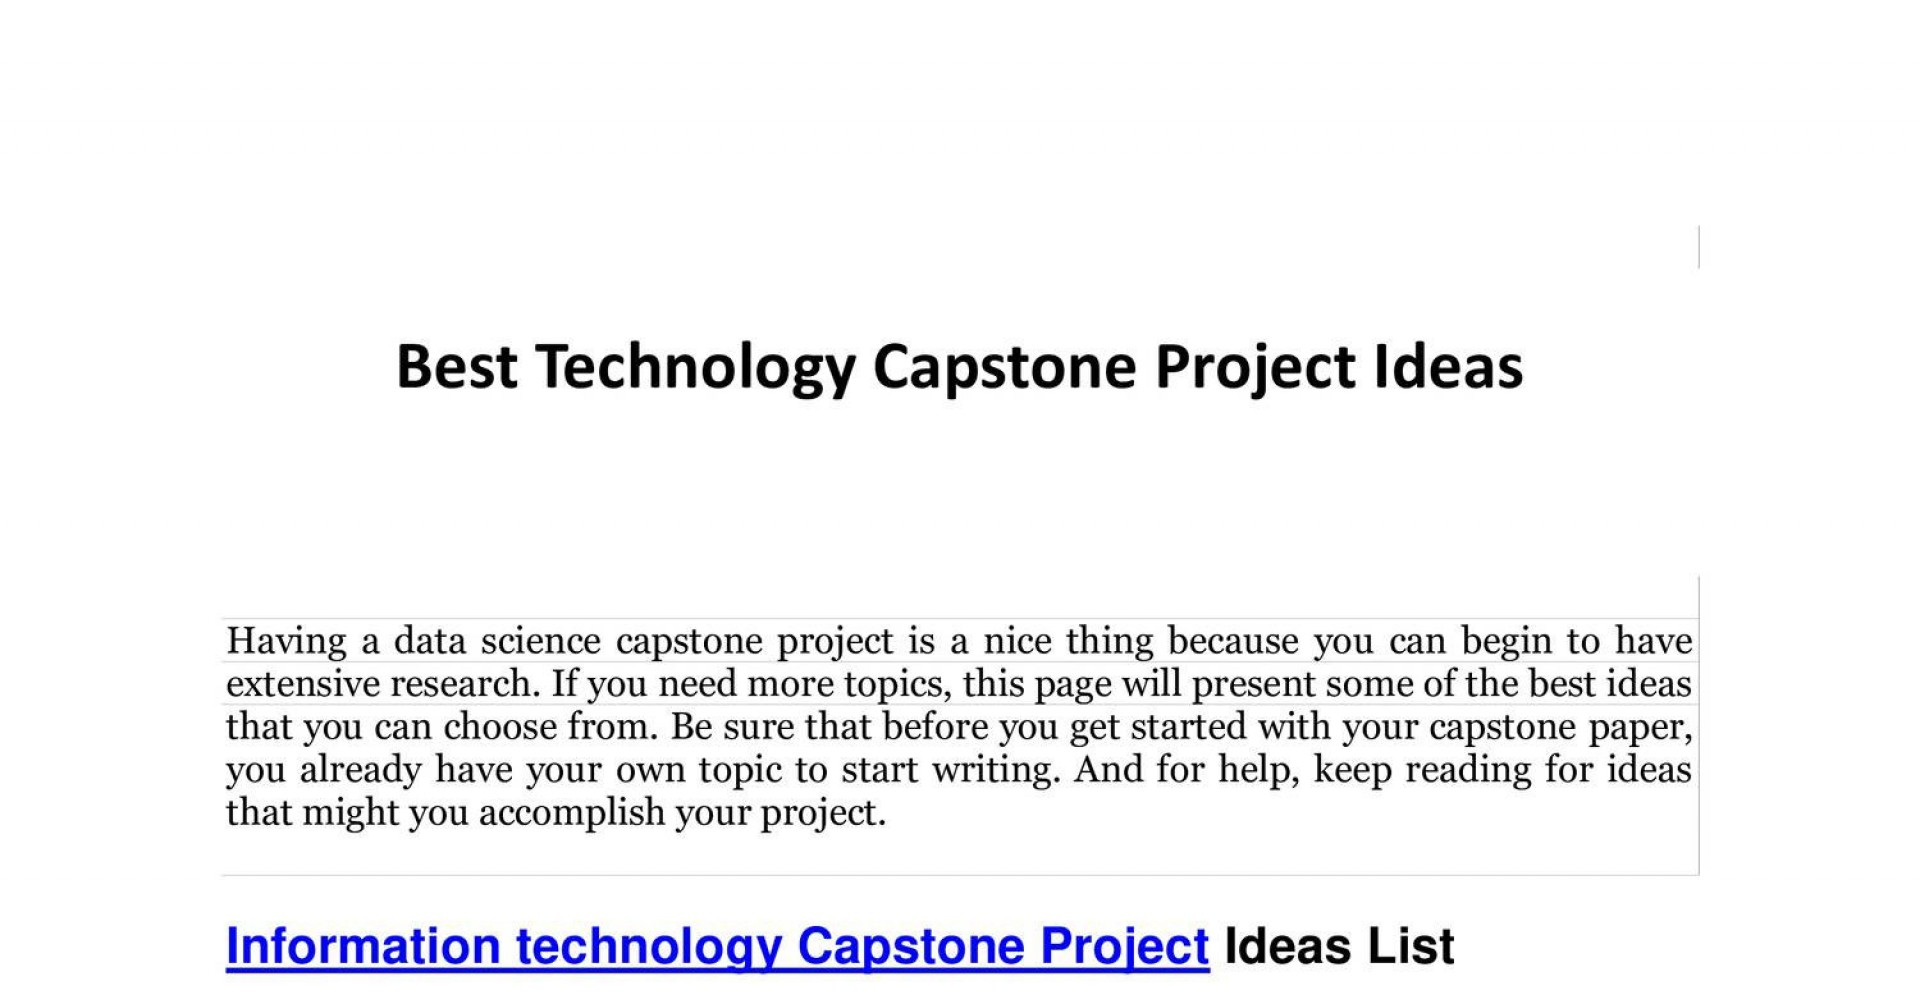 009 Best Technology Capstone Project Ideas Research Paper Topic For Shocking In Information 1920